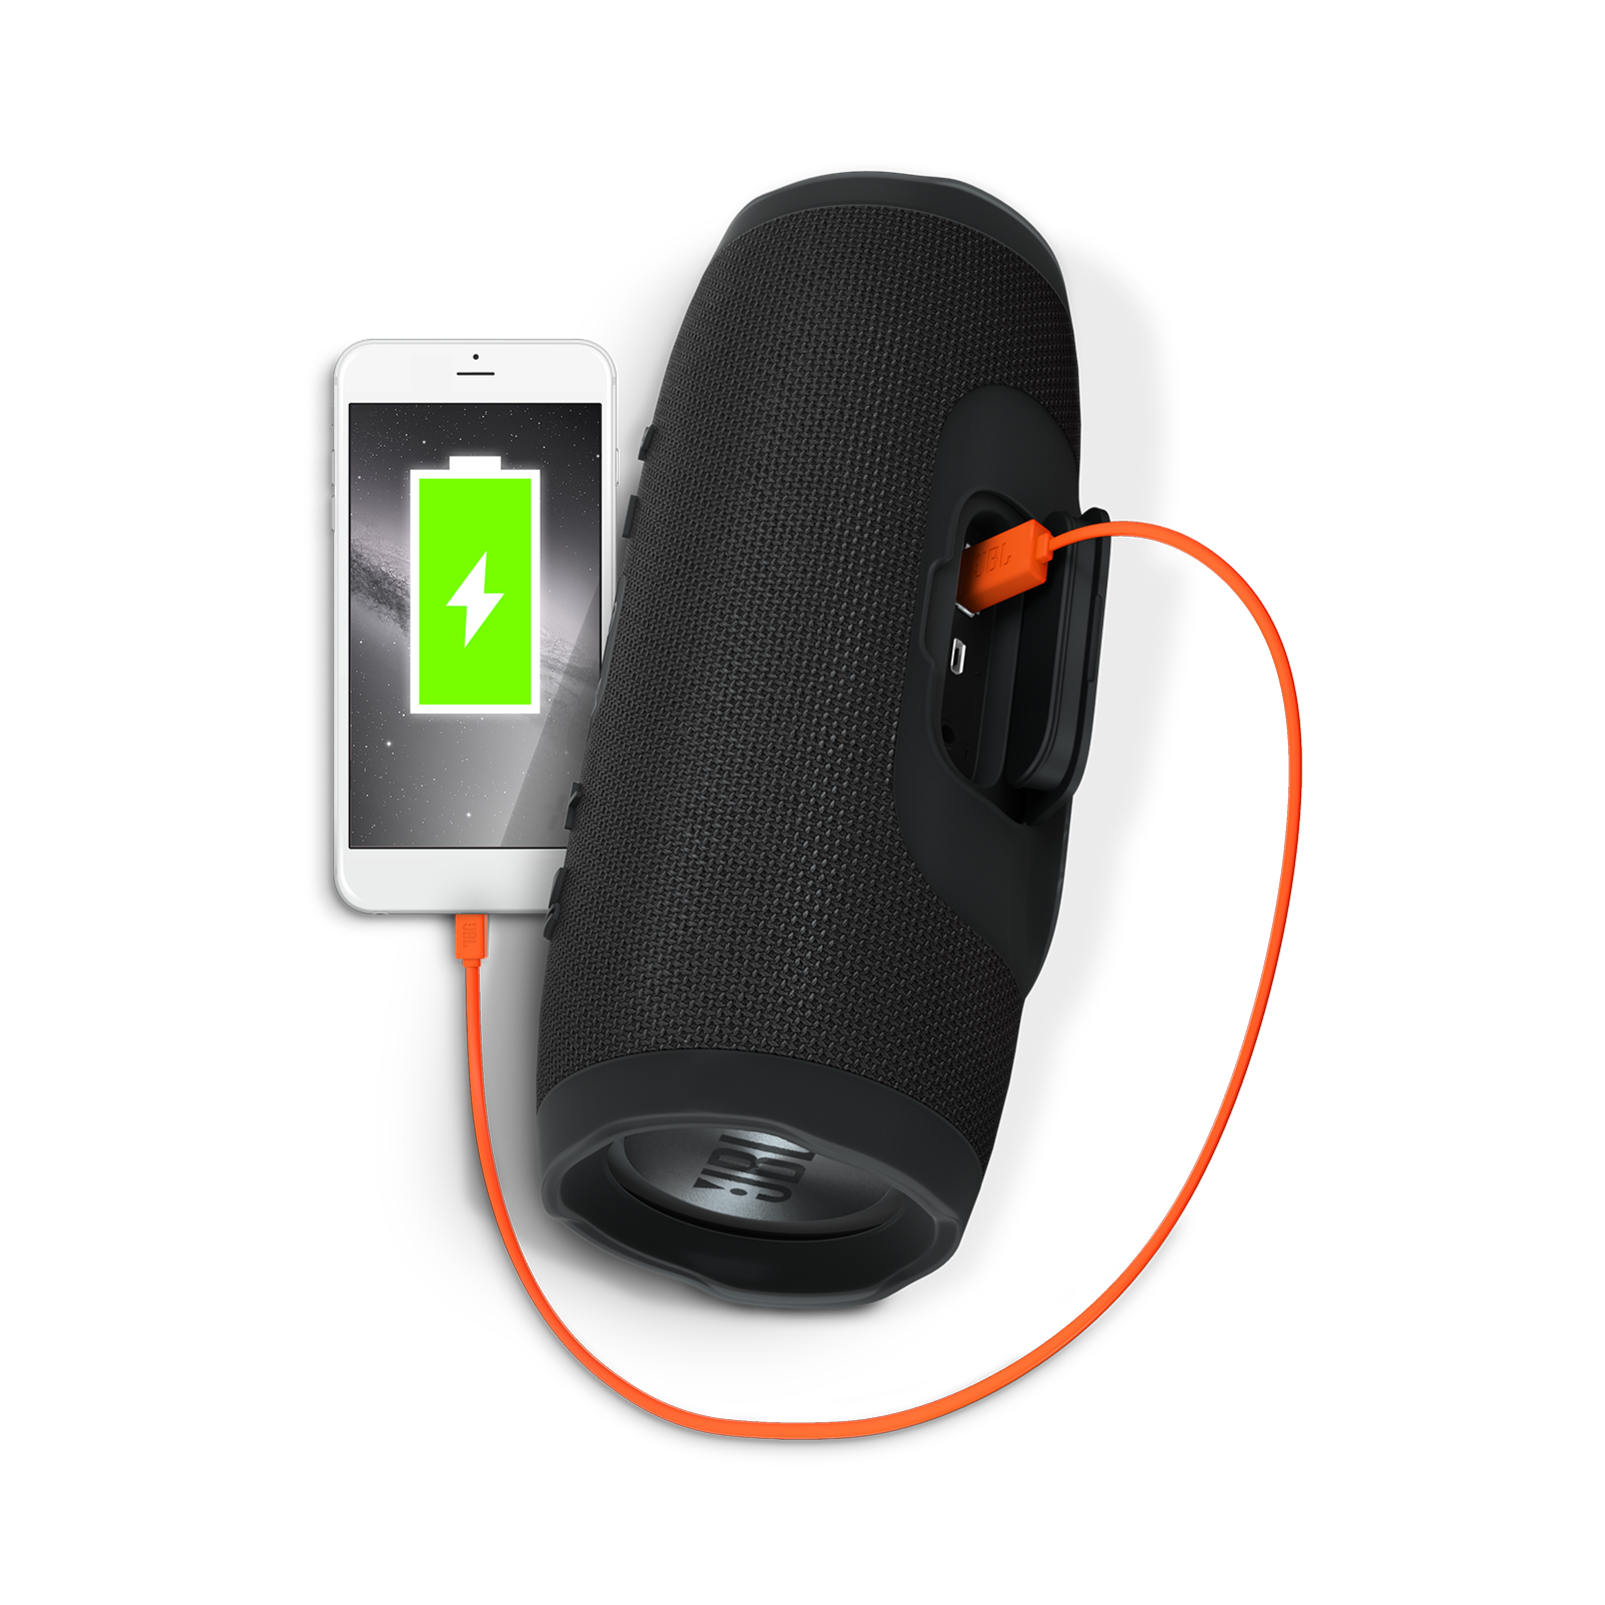 JBL Charge 3 - Black - Full-featured waterproof portable speaker with high-capacity battery to charge your devices - Detailshot 1